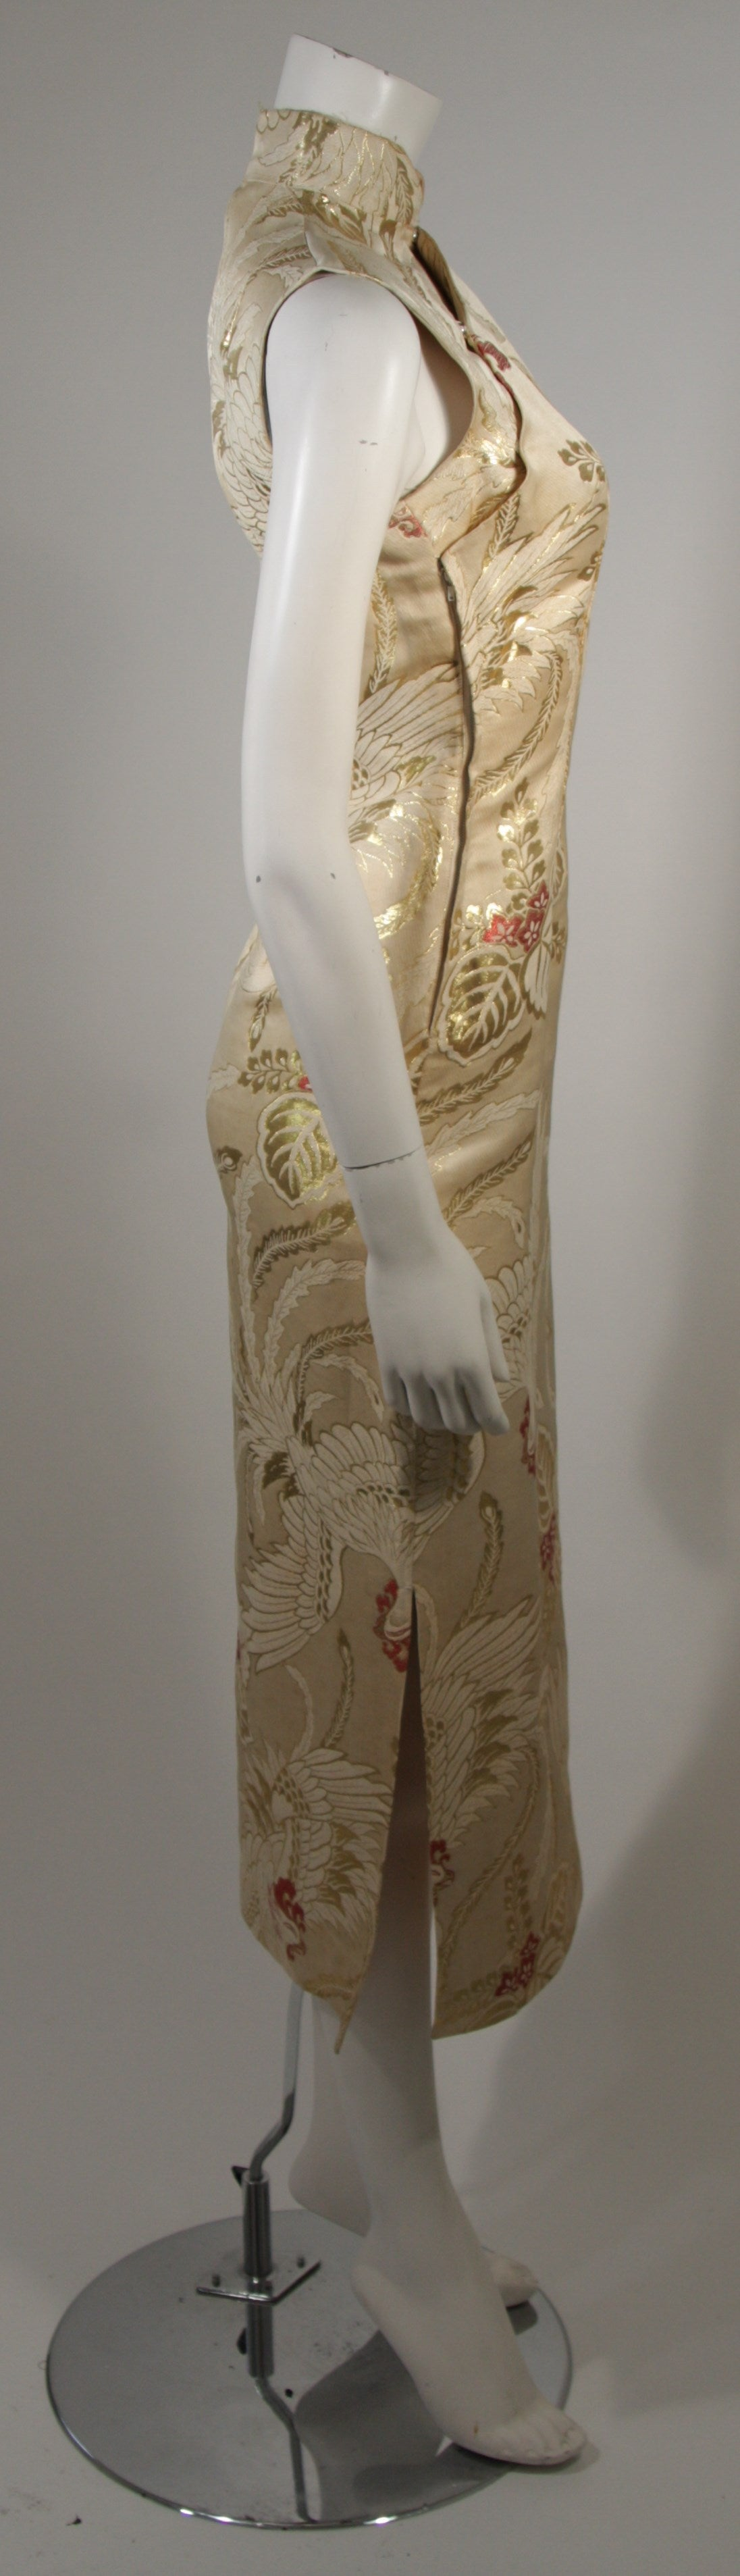 1950's Ivory and Gold Brocade Phoenix w. Red Flowers Cocktail Dress XS For Sale 2